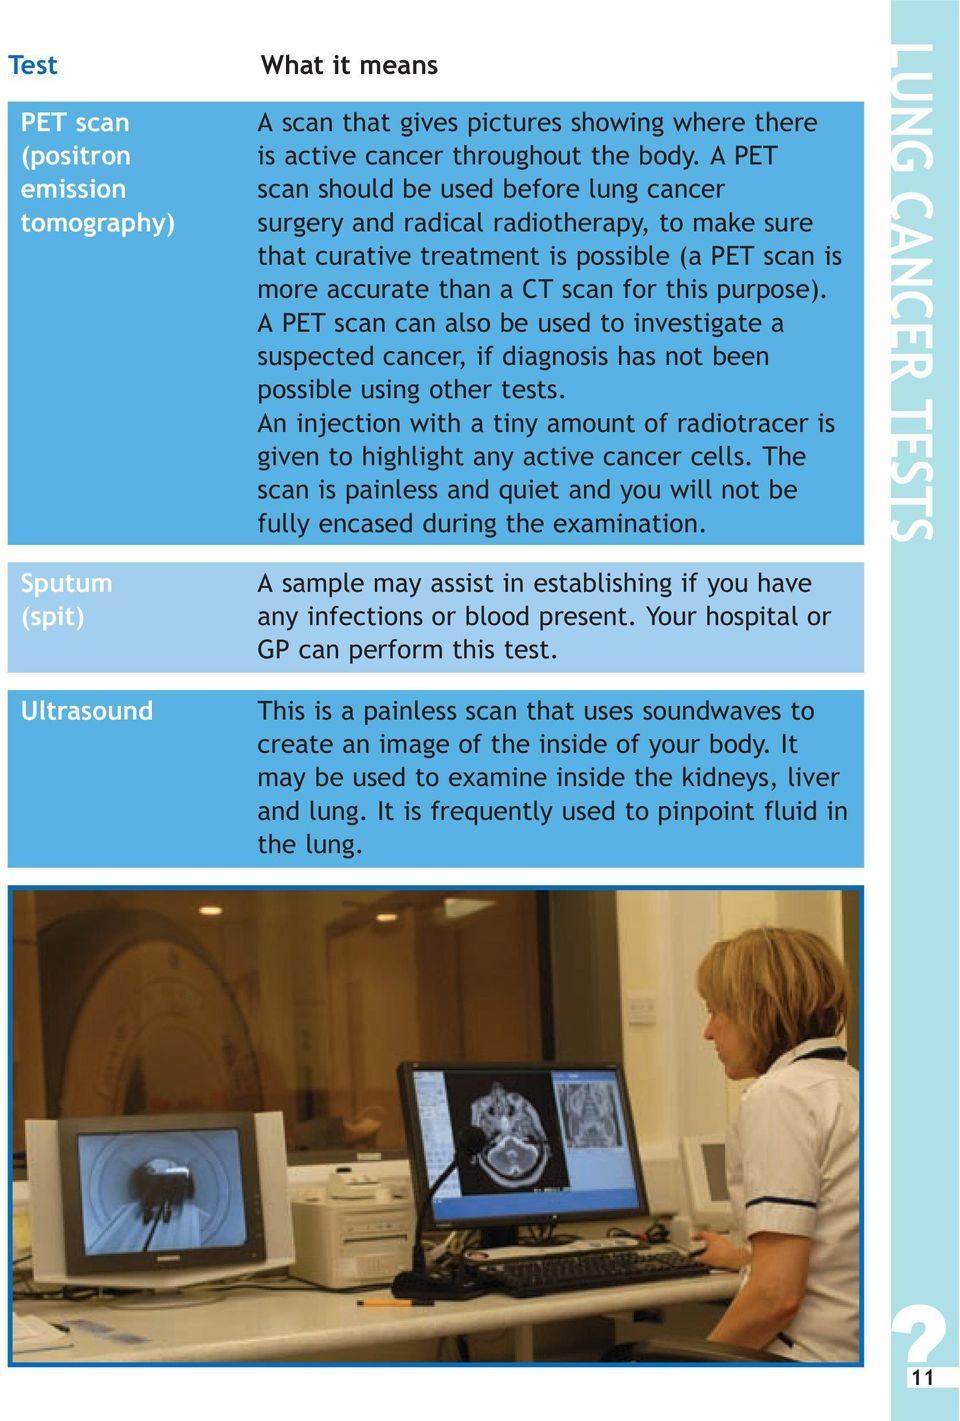 A PET scan can also be used to investigate a suspected cancer, if diagnosis has not been possible using other tests.